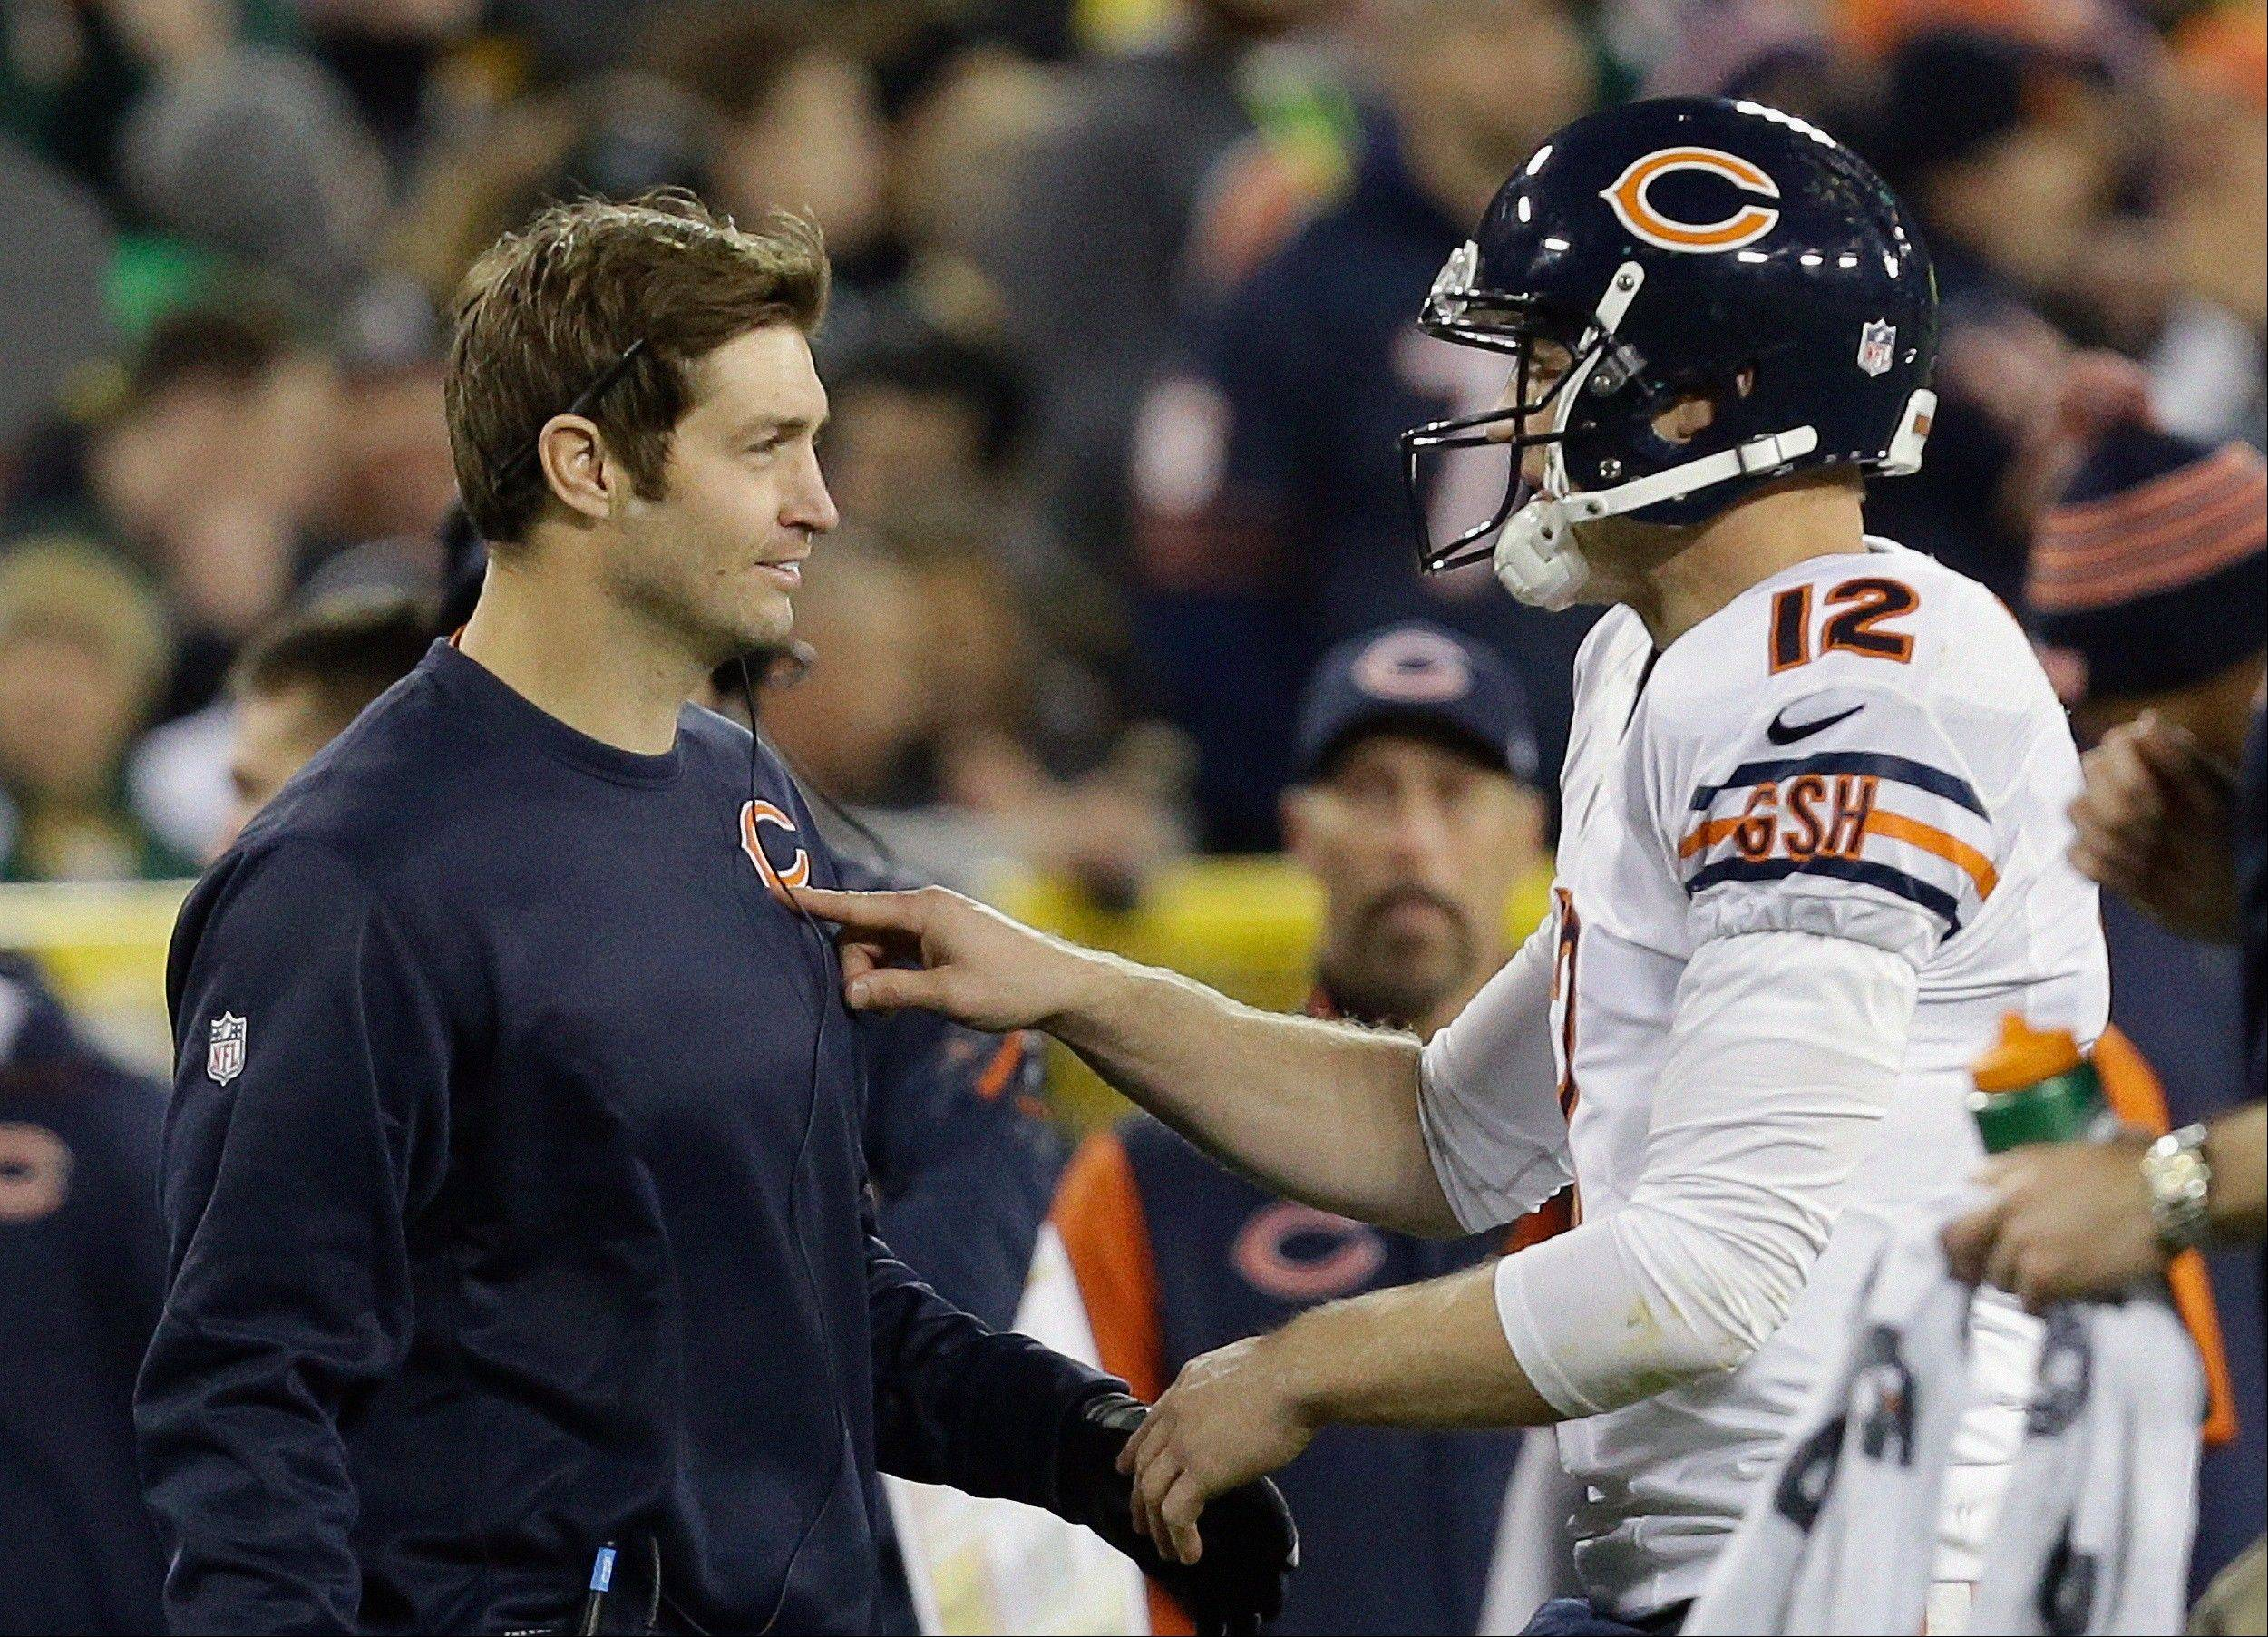 Bears quarterback Josh McCown (12) talks to Jay Cutler during the first half of an NFL football game against the Green Bay Packers Monday, Nov. 4, 2013, in Green Bay, Wis.